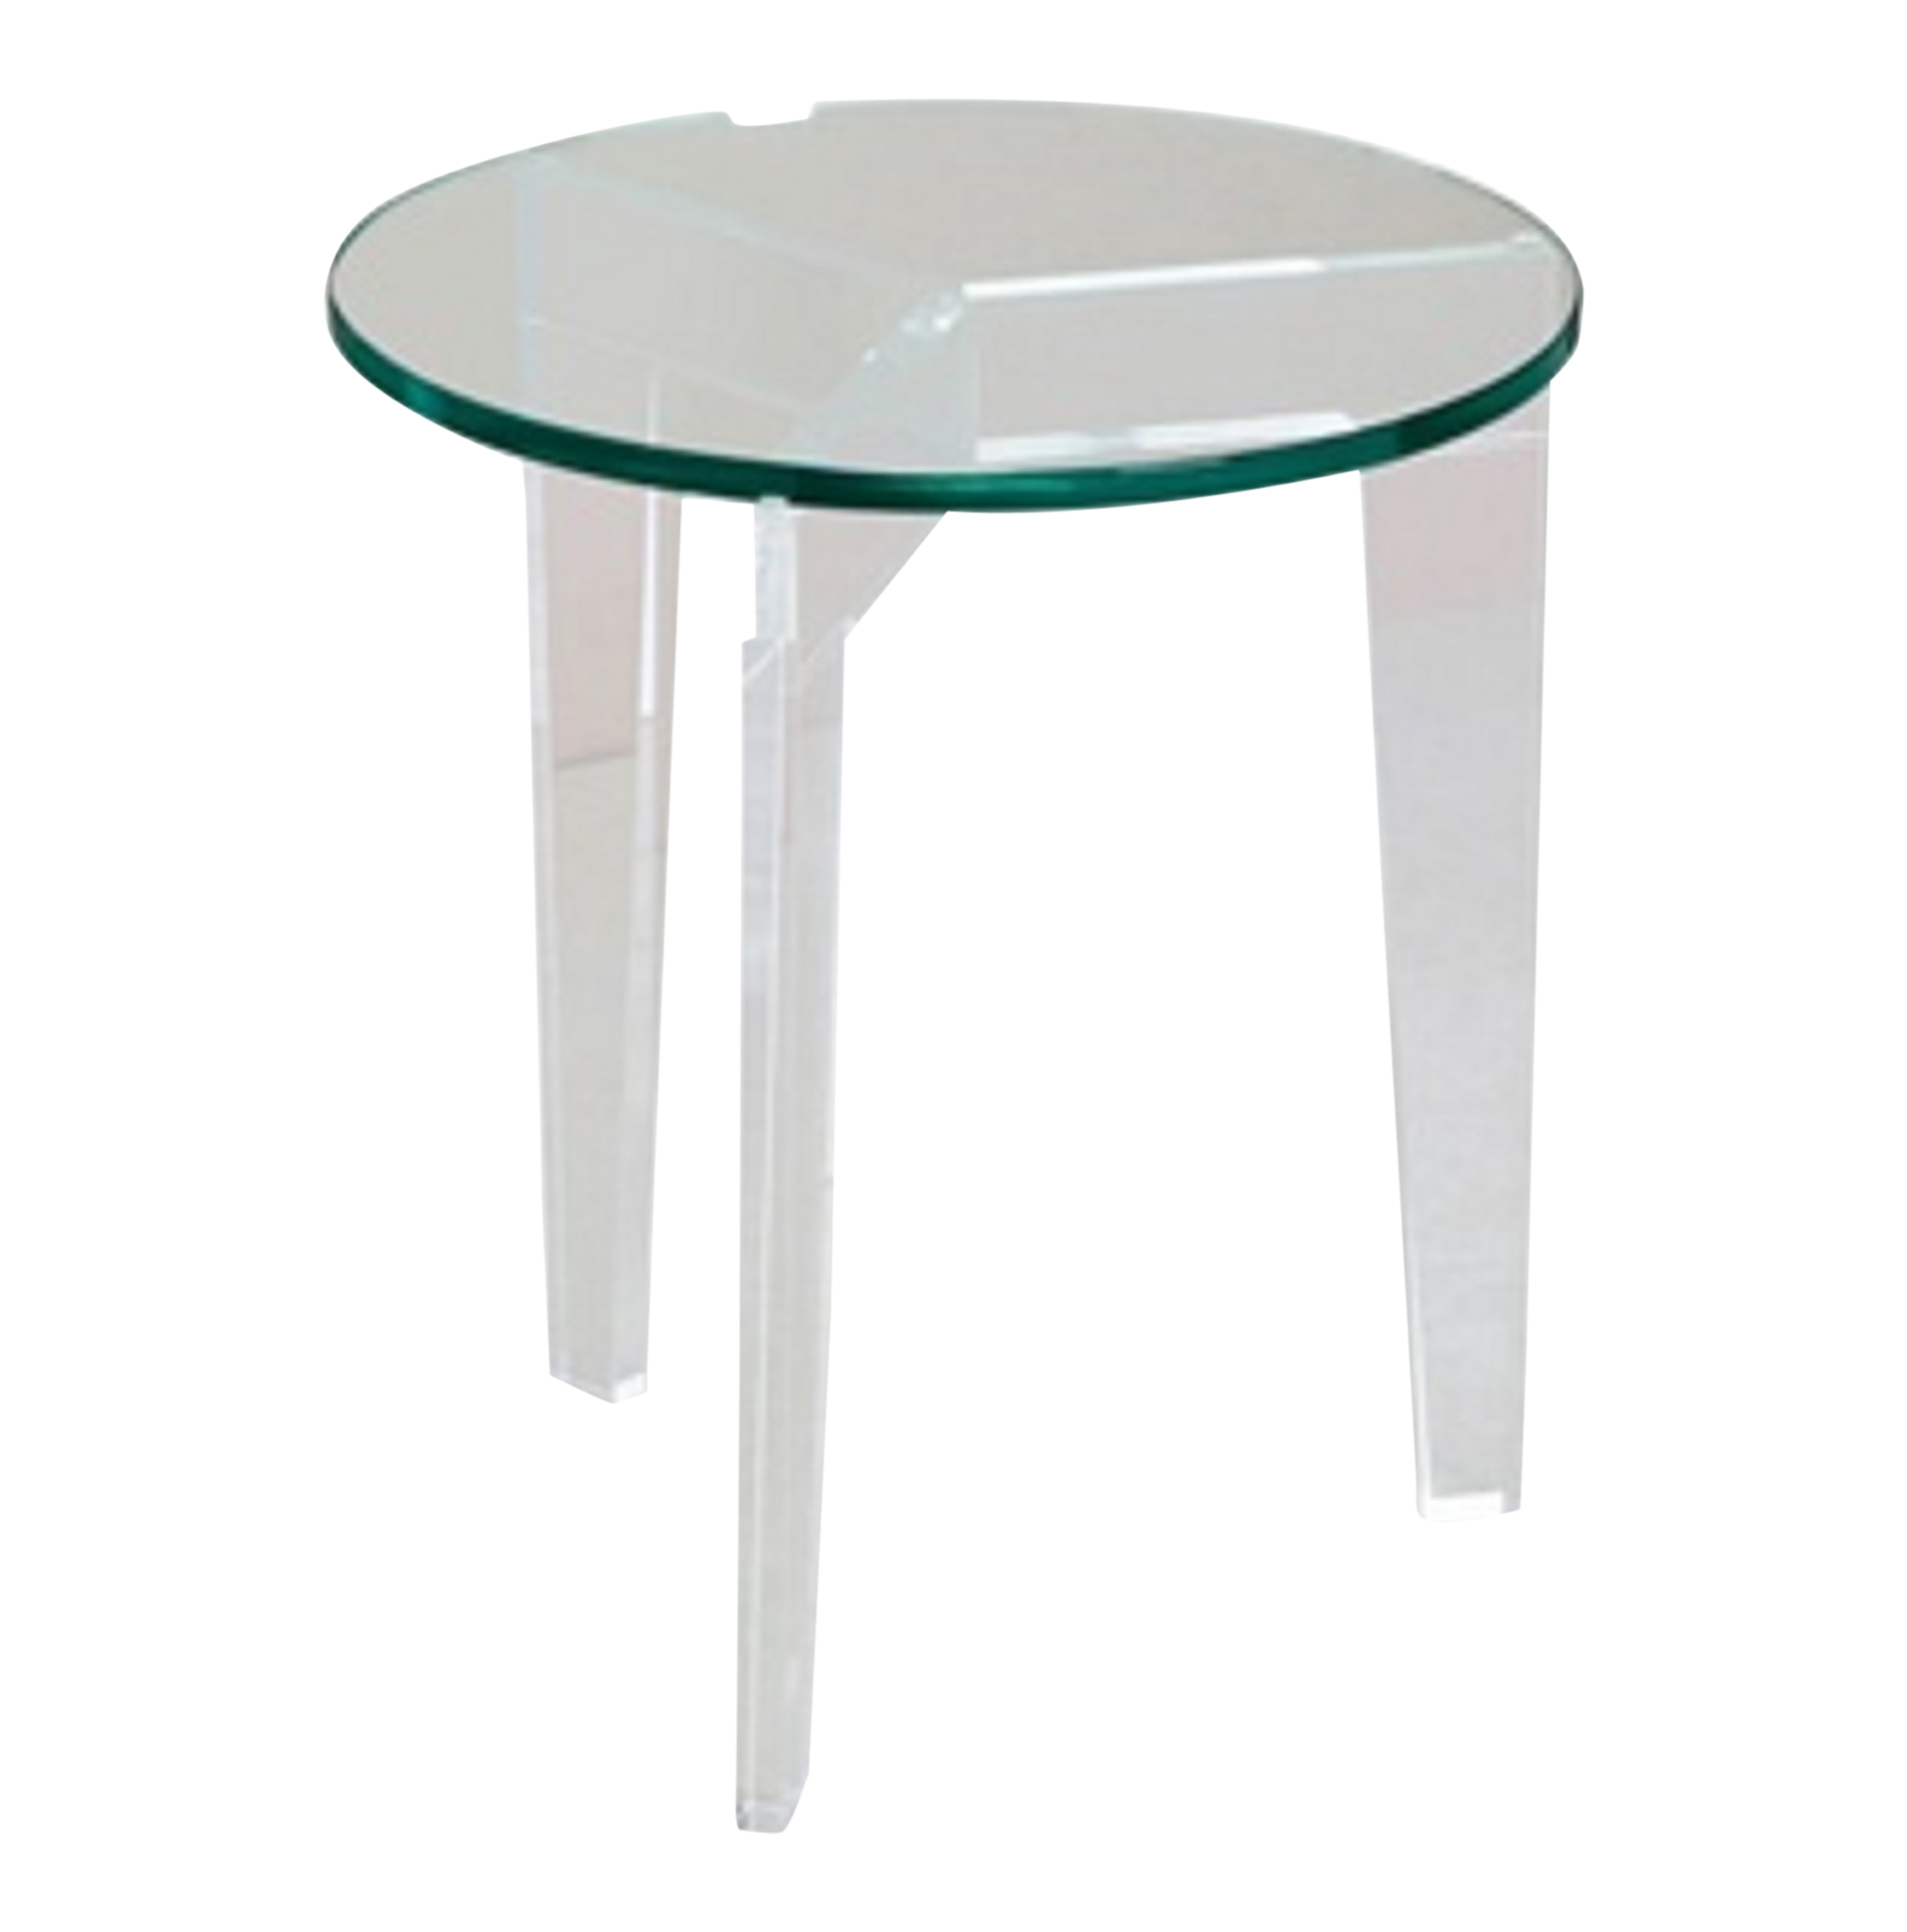 acrylic end table ashley accent tables small porcelain vase lamp storage furniture for spaces round oak pottery barn sconces stand colorful lamps high back dining chairs all glass